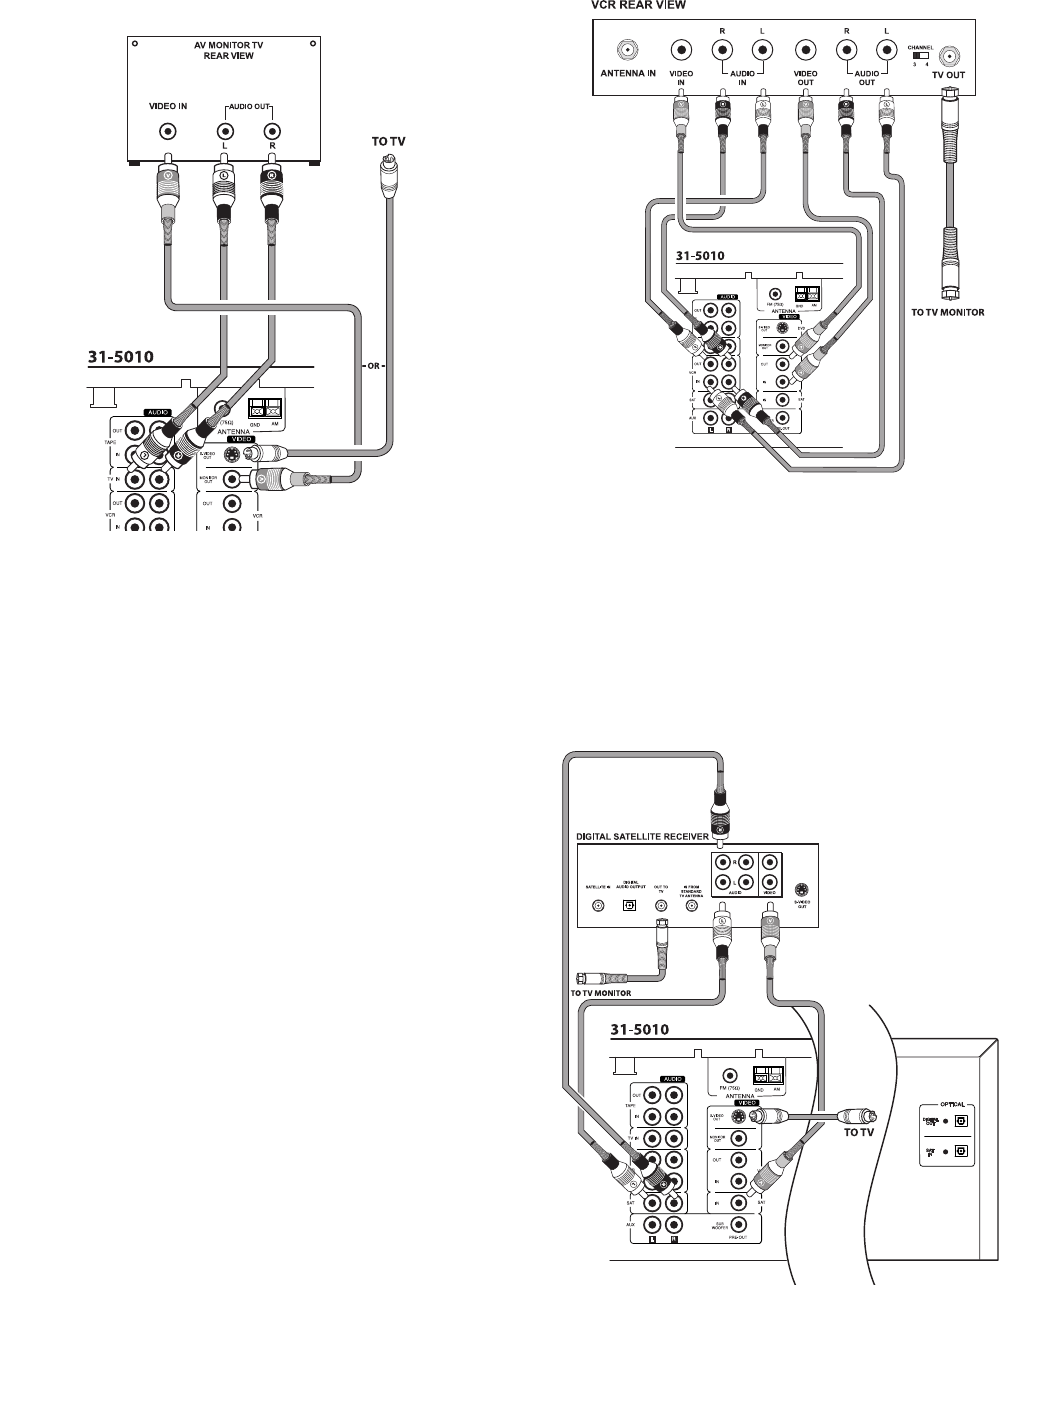 Page 8 of RCA Home Theater System 600-Watt User Guide